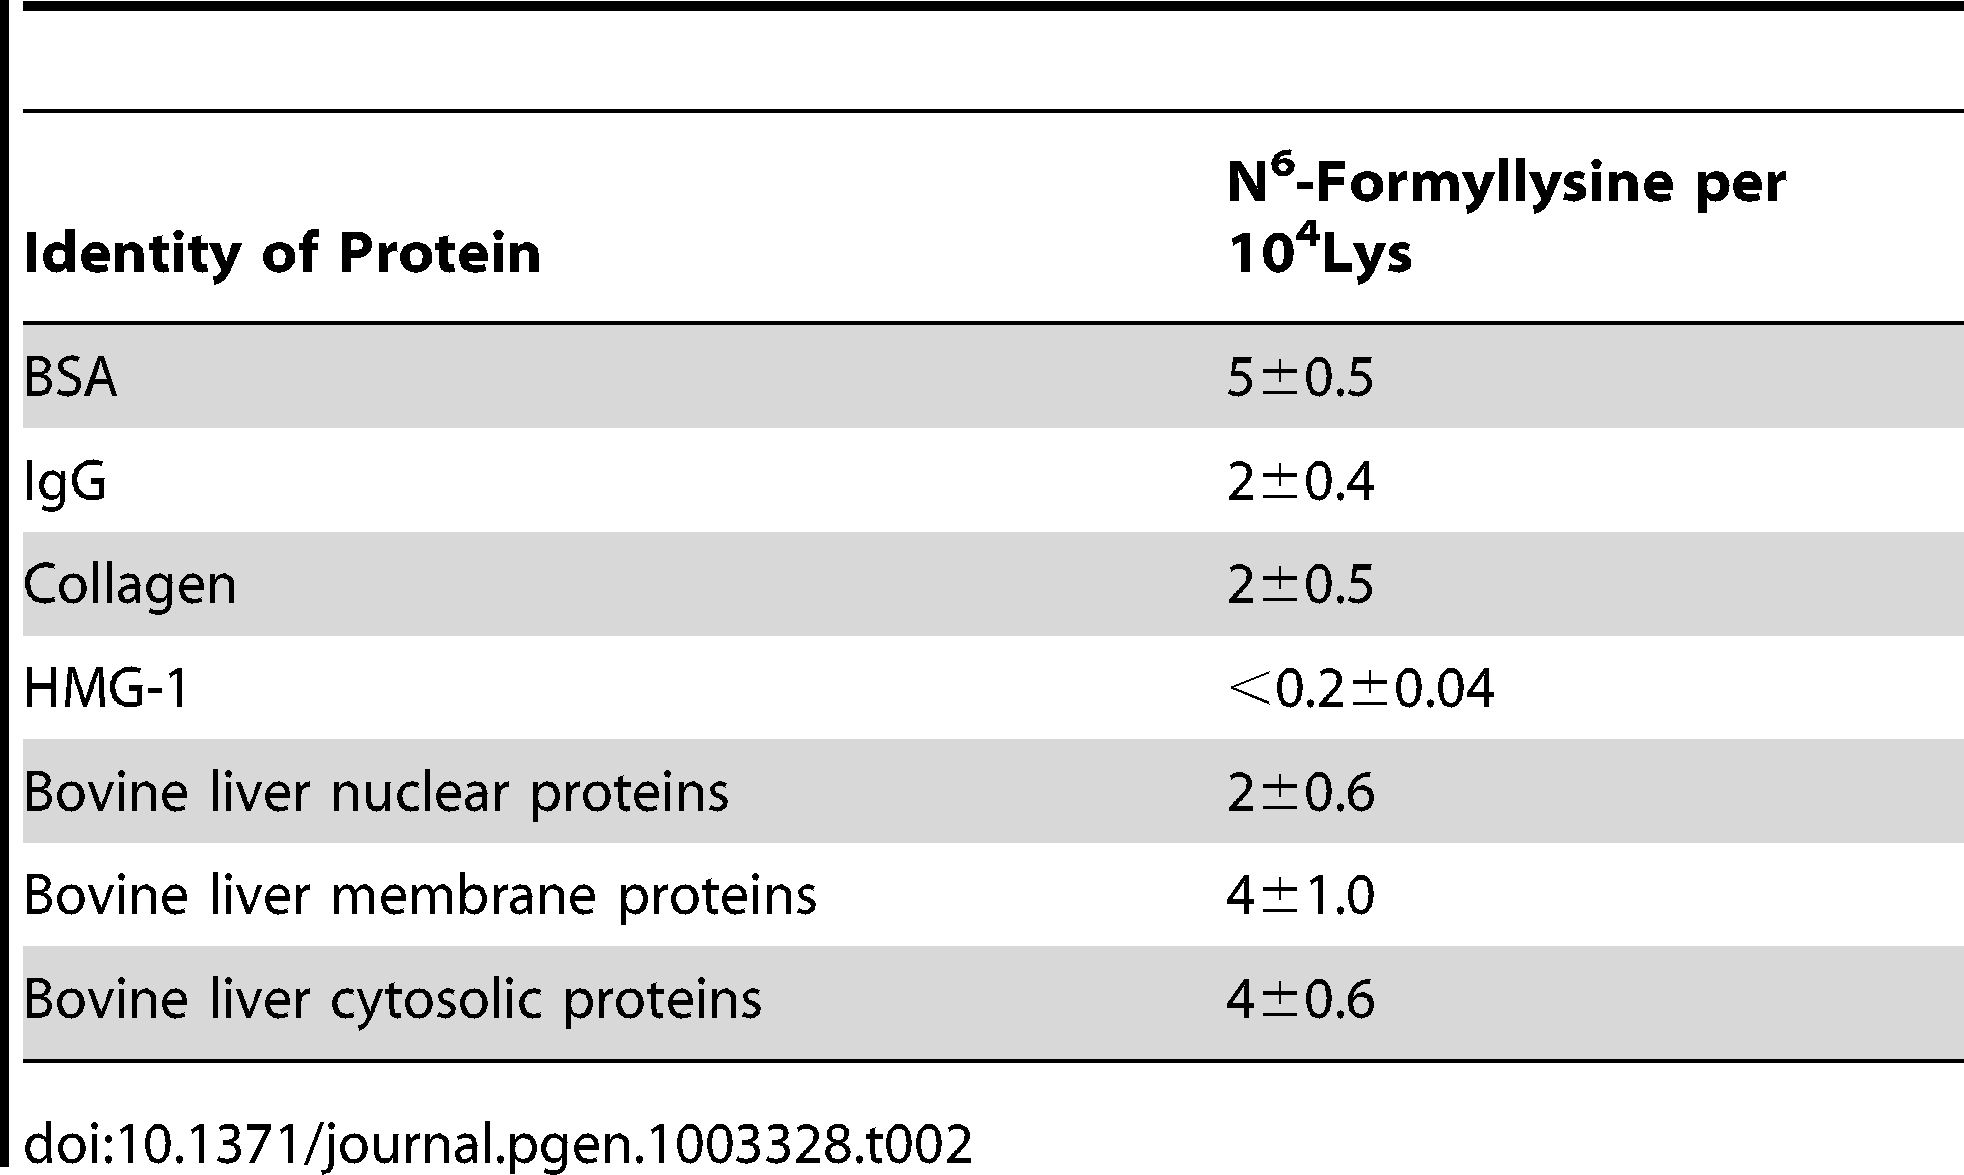 Quantification of N<sup>6</sup>-formyllysine in different proteins.